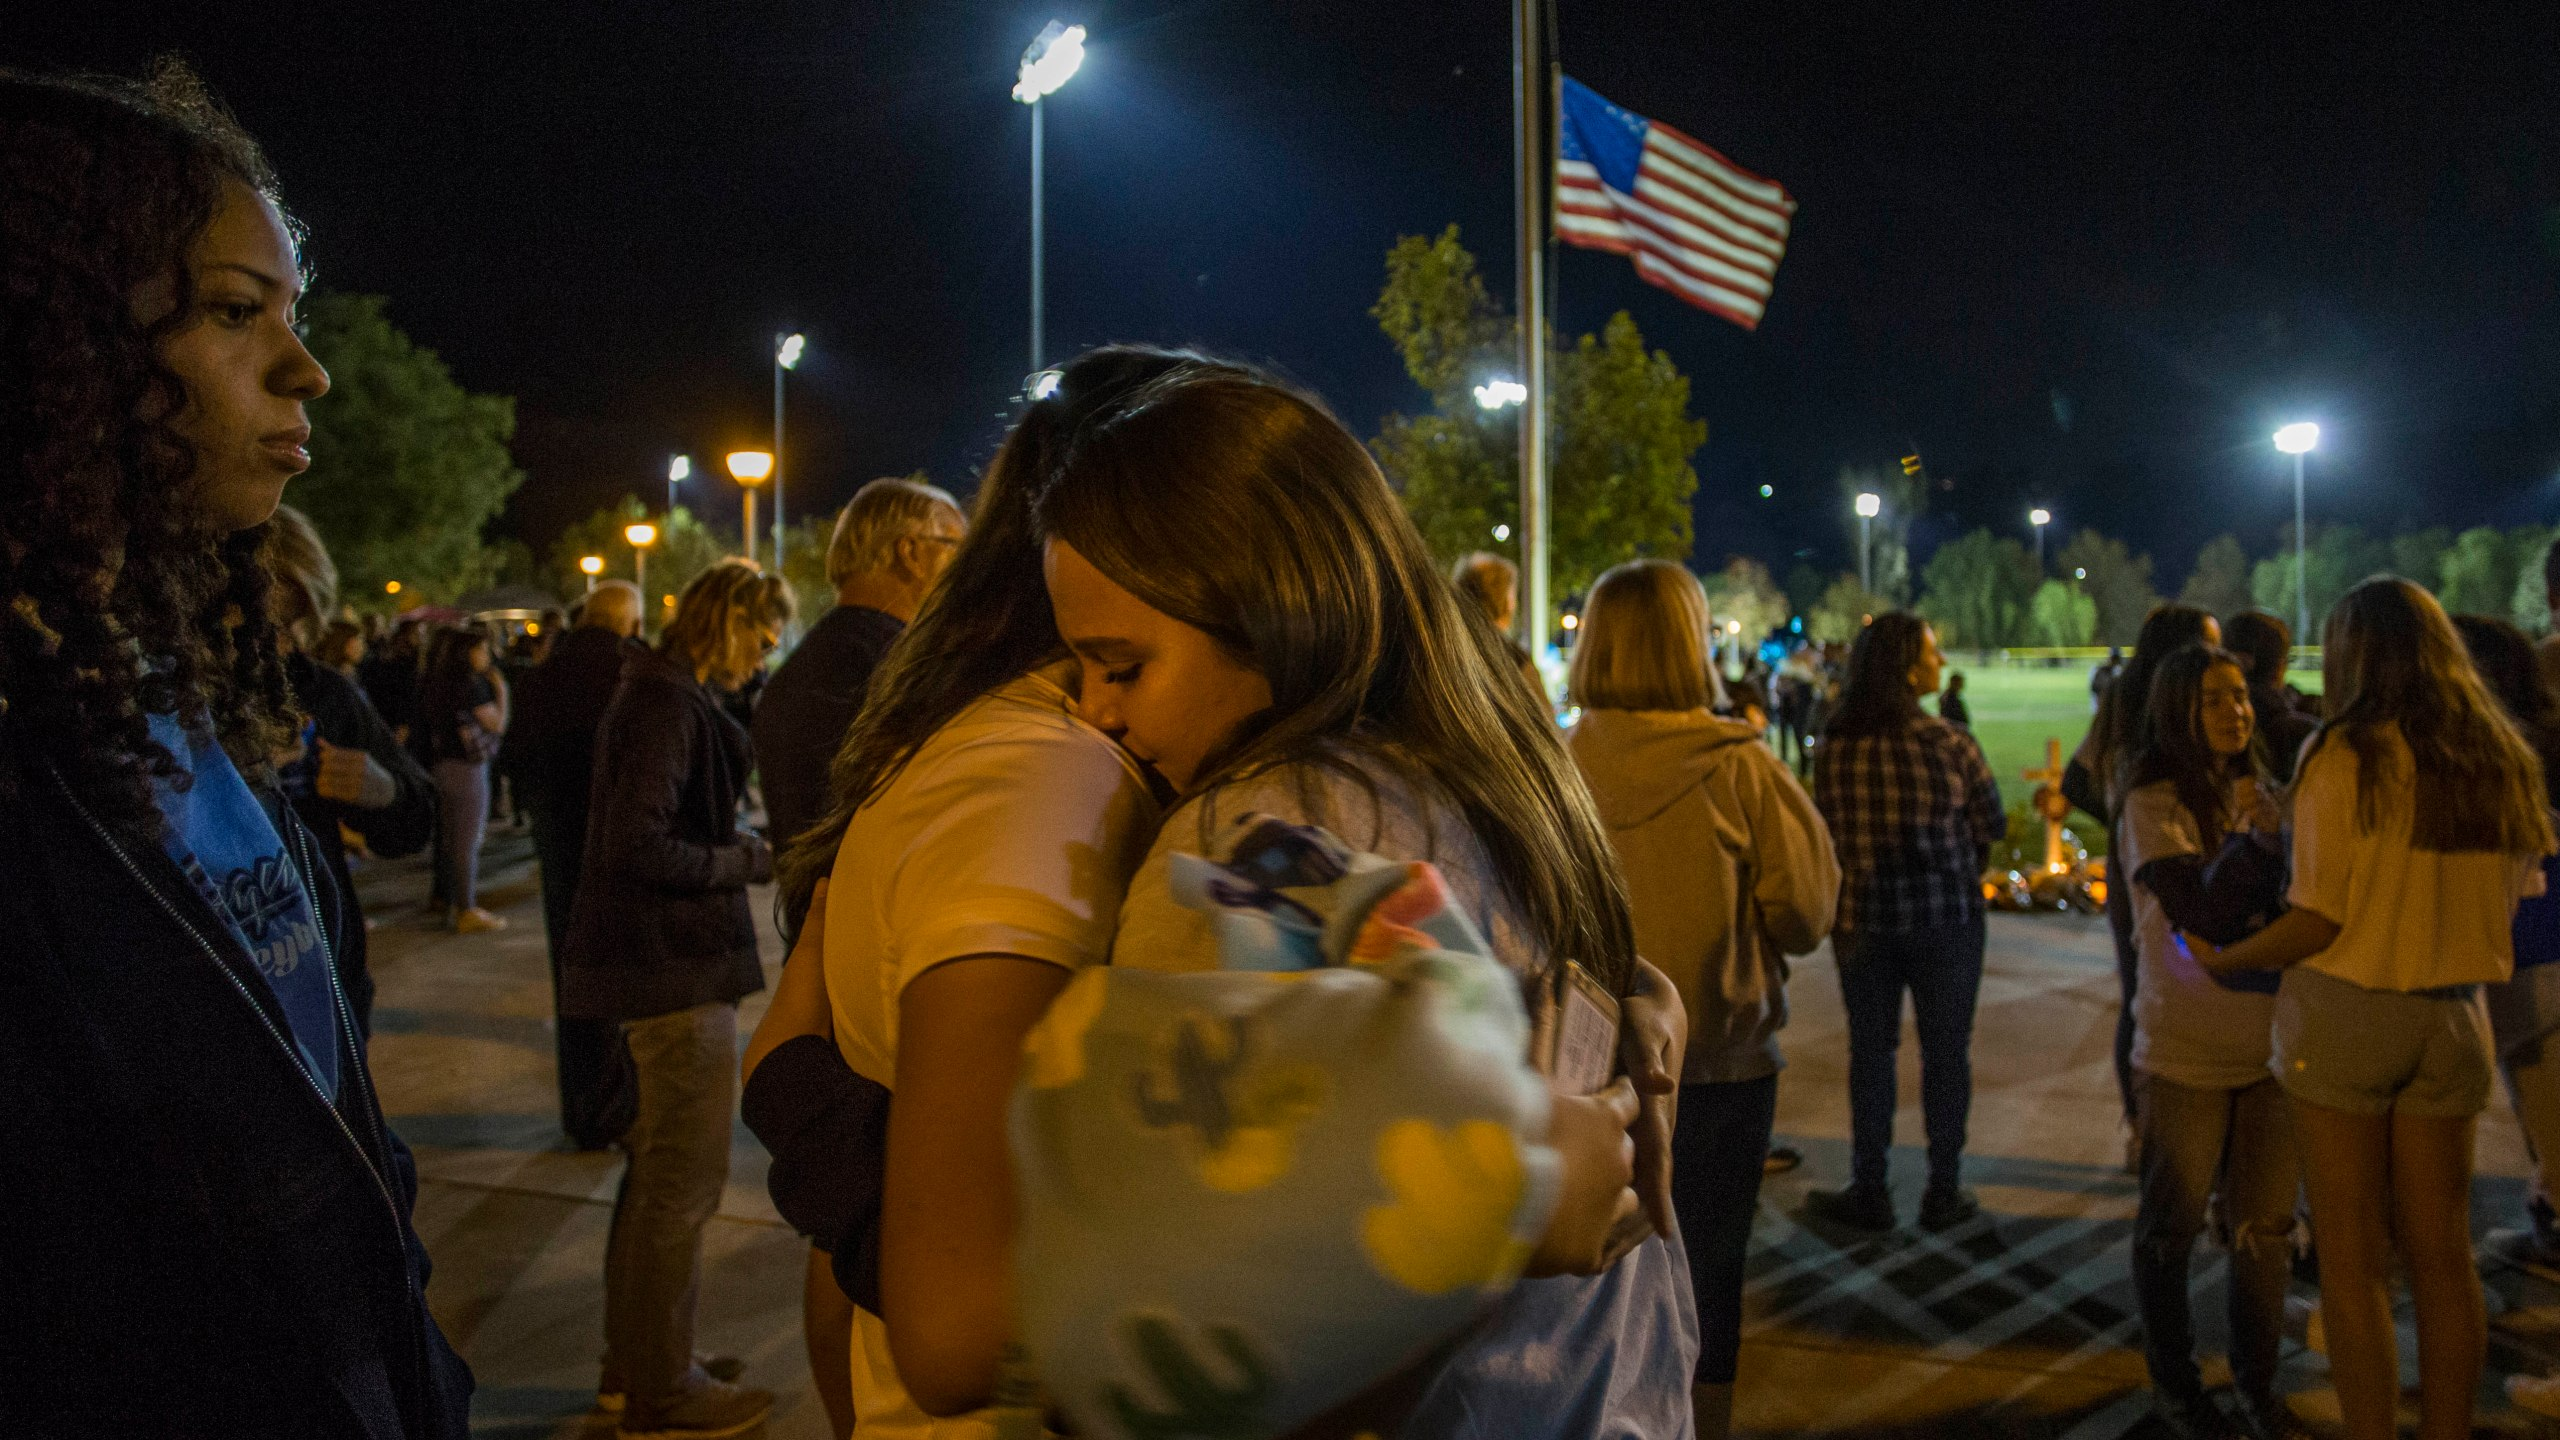 Mourners hug at a vigil held for shooting victims on Nov. 17, 2019 in Santa Clarita. (Credit: Apu Gomes/Getty Images)